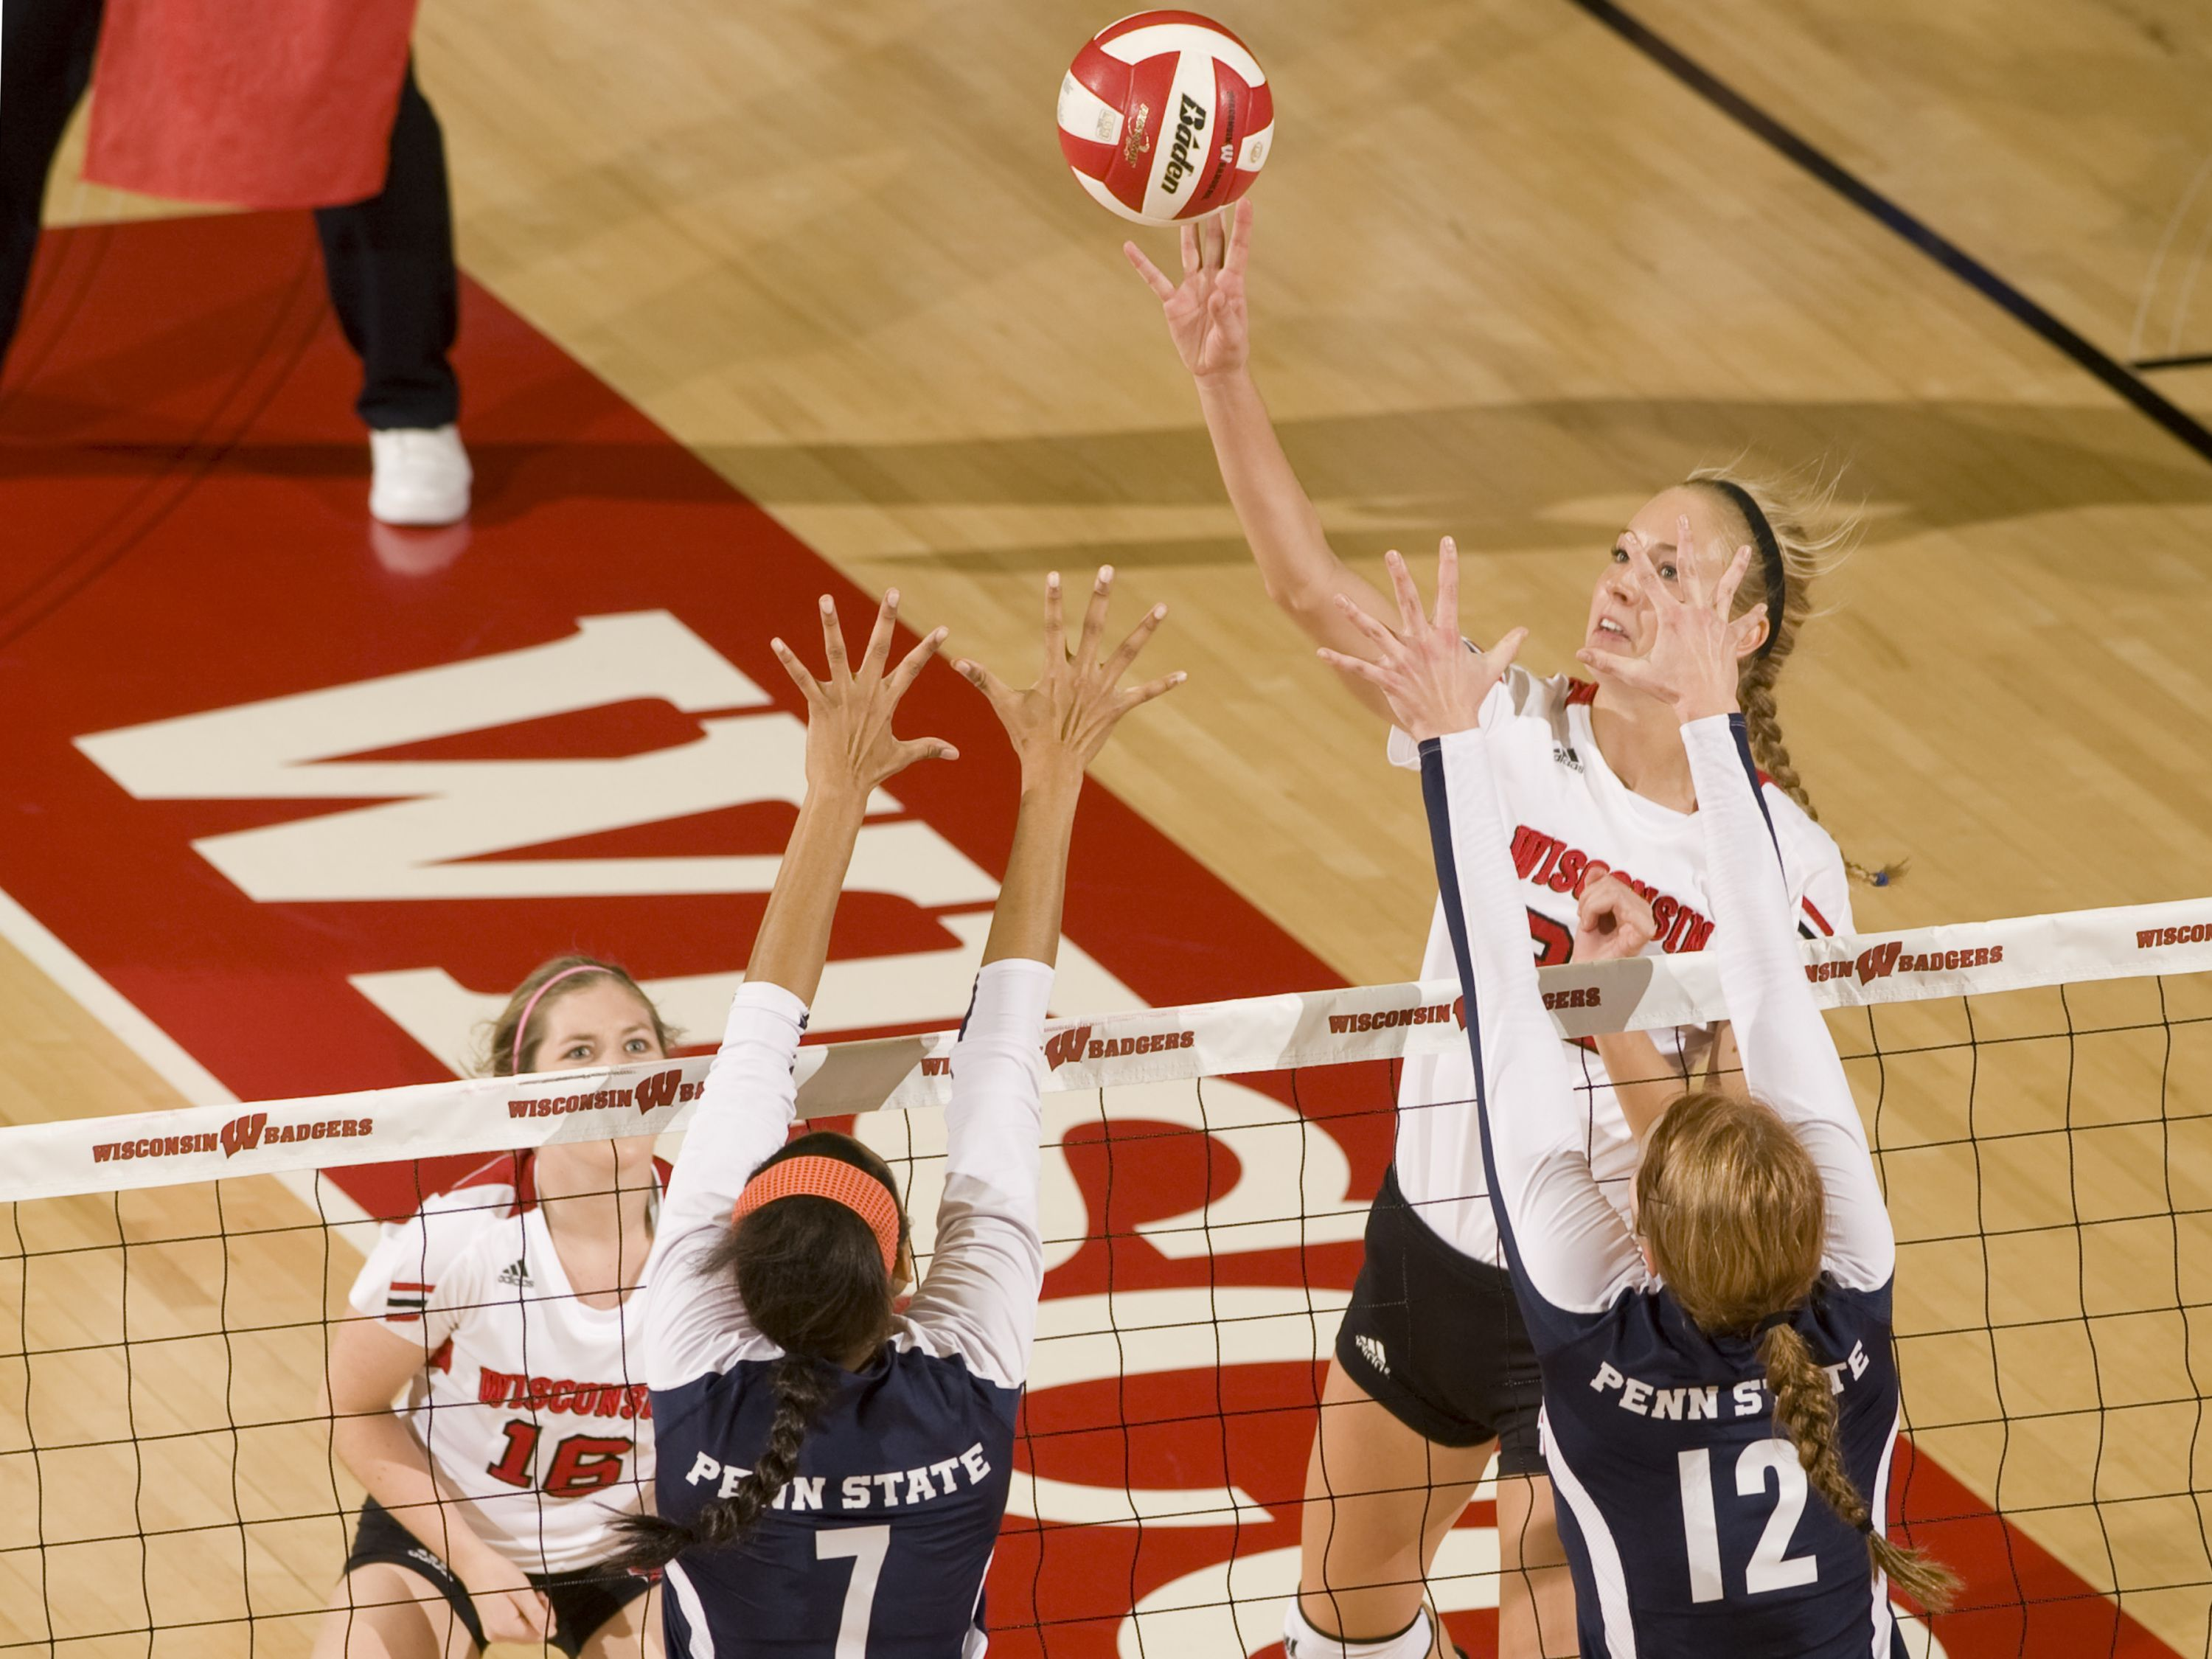 Ellen Chapman Goes Up For A Kill Against The Nittany Lions Badger Volleyball Wisconsin Badgers University Of Wisconsin